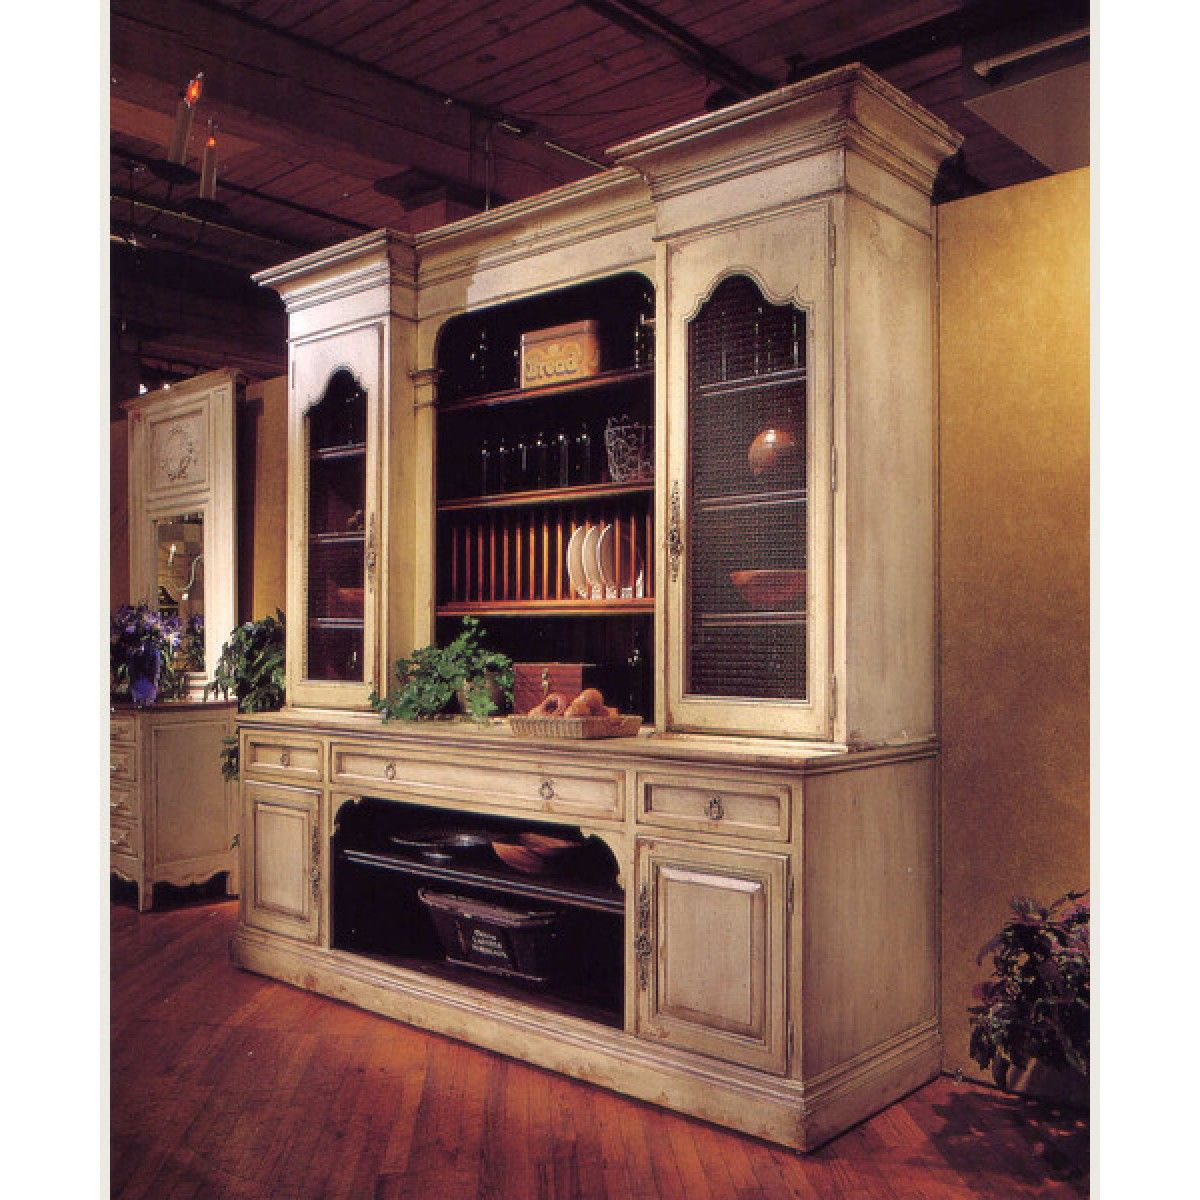 Habersham French Cupboard With Screen And Plate Rack French Cupboard French Country Kitchens Plate Racks